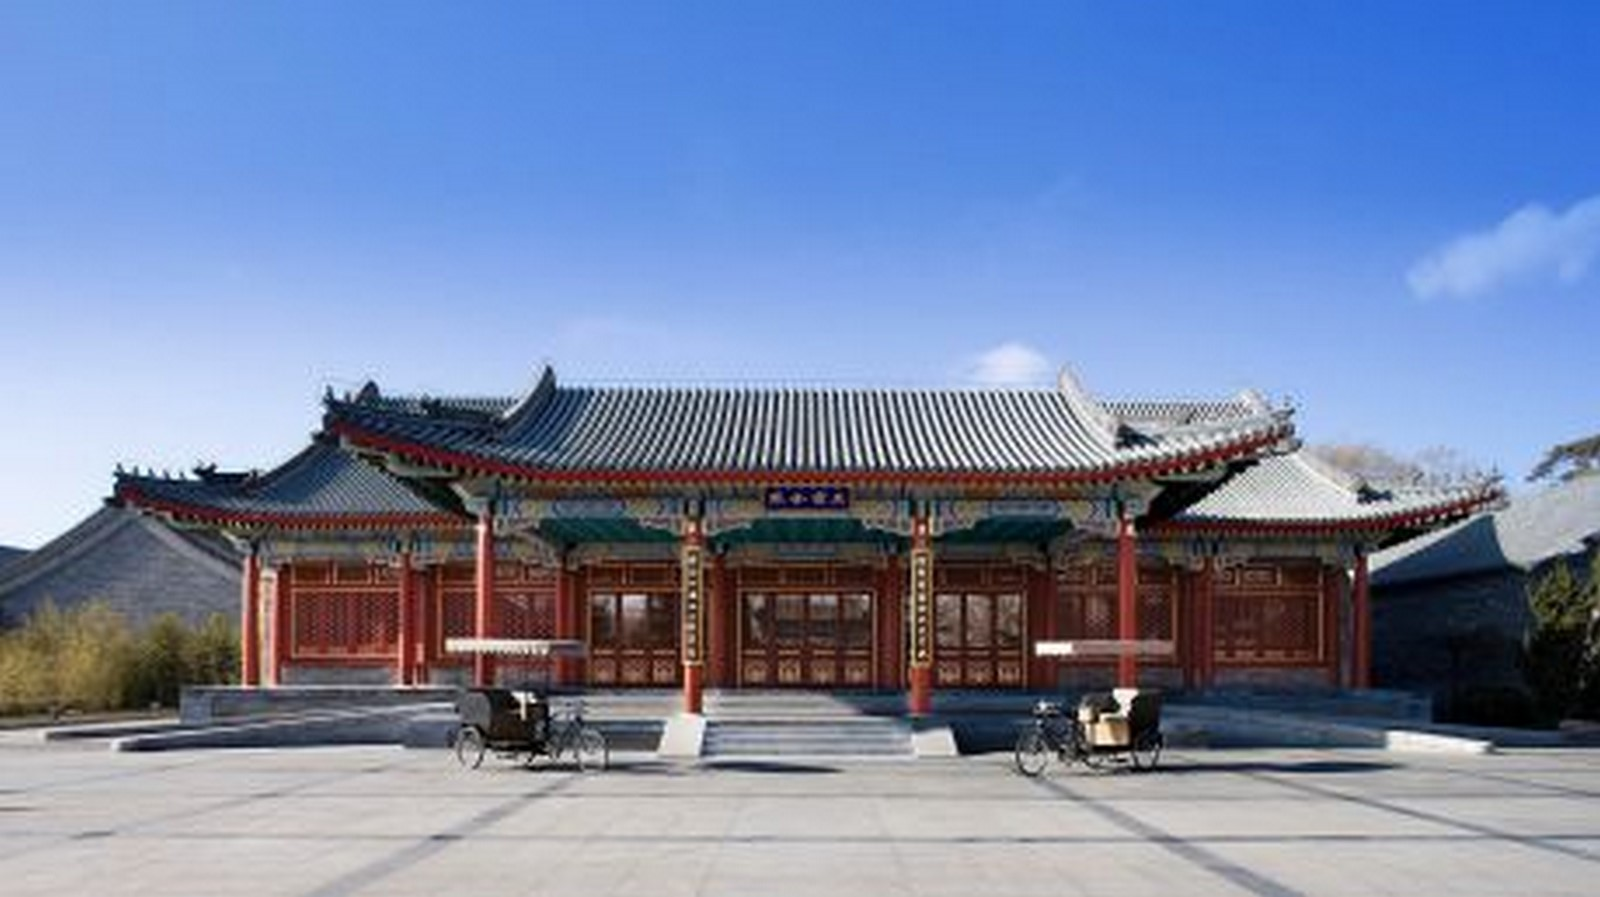 10 Reasons why architects must visit Beijing - Sheet23